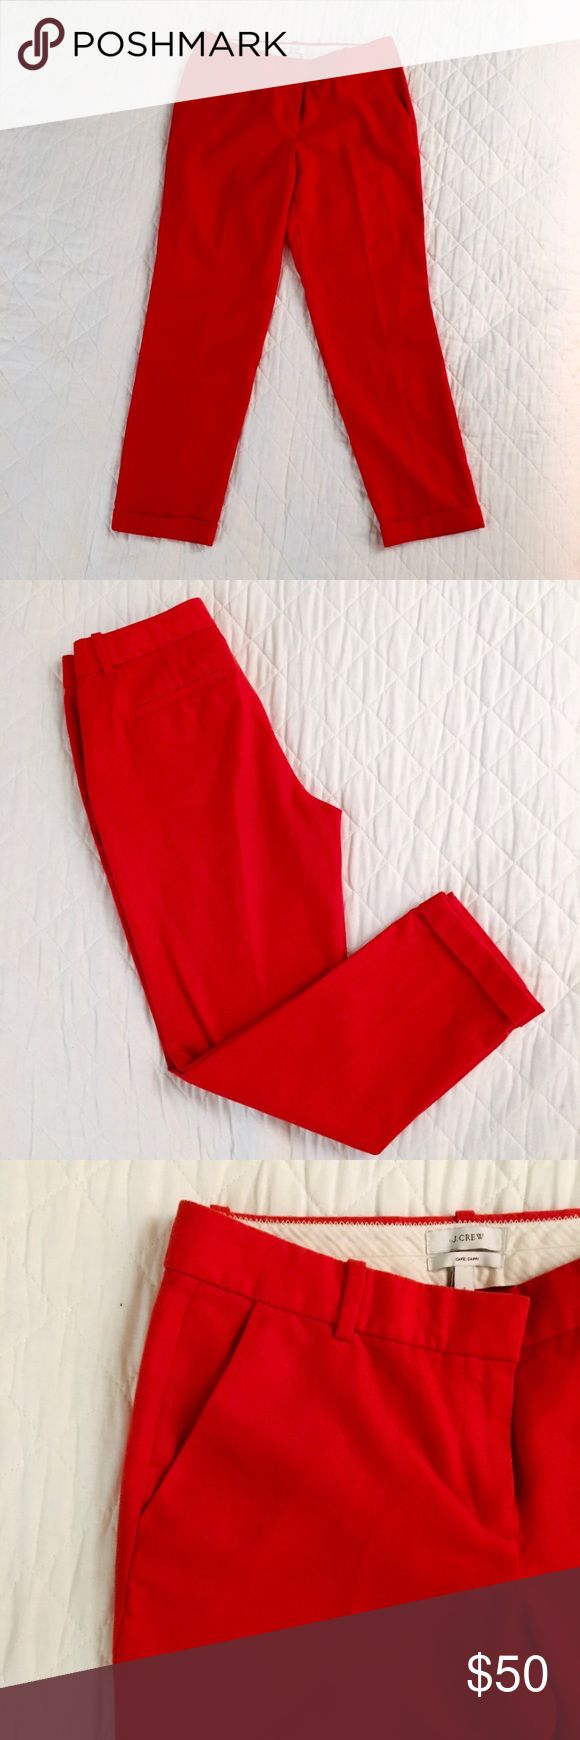 Bright red-orange J. Crew cafe Capri pants Bright red 100% wool cafe capri pants from J. Crew for all of you bold ladies out there 😉 the color is a bit orange ish and is perfect for spring and summer! Excellent condition, no flaws. Button and hook closure (see pic) and front and back pockets. The back pockets are still sealed. Inseam 27 in. Rise 9 in. Hips 18 in. Waist 14 in. lying flat. Fitted through hip and thigh, skinny leg, cuffed at bottom. Offers considered! J. Crew Pants Capris